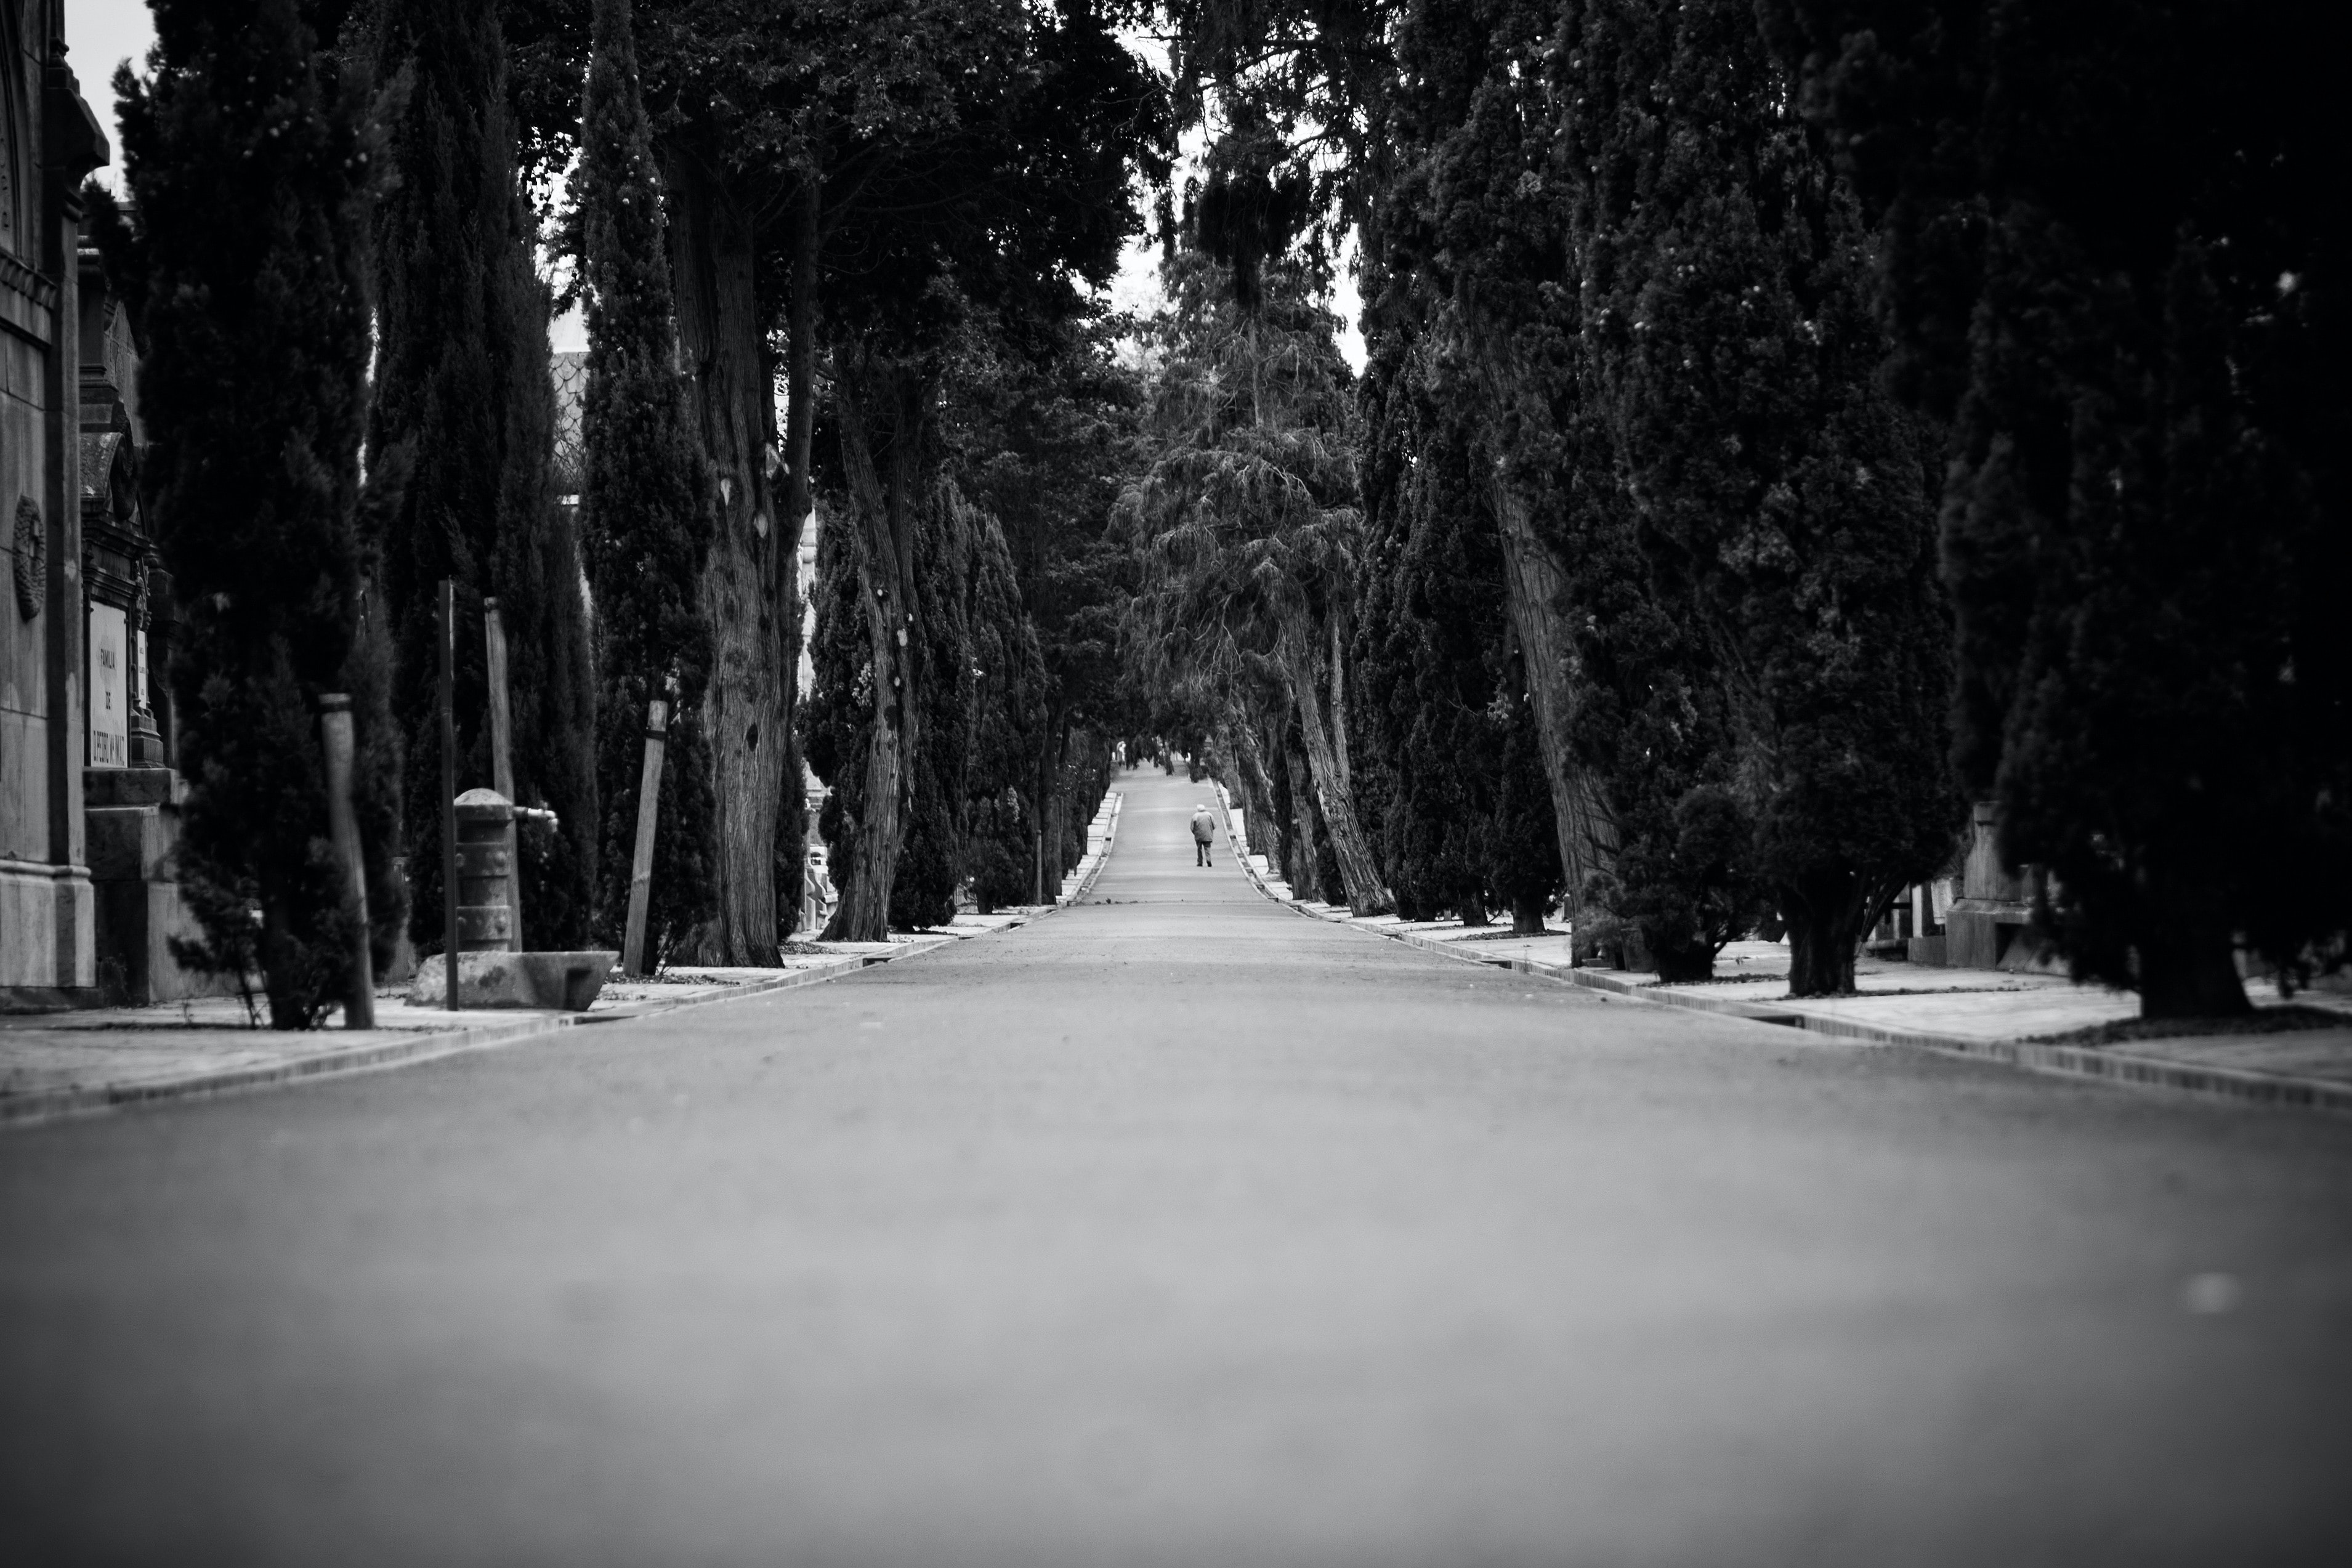 Black and white shot of person in distance walking on tree lined road in Polloe Plaza